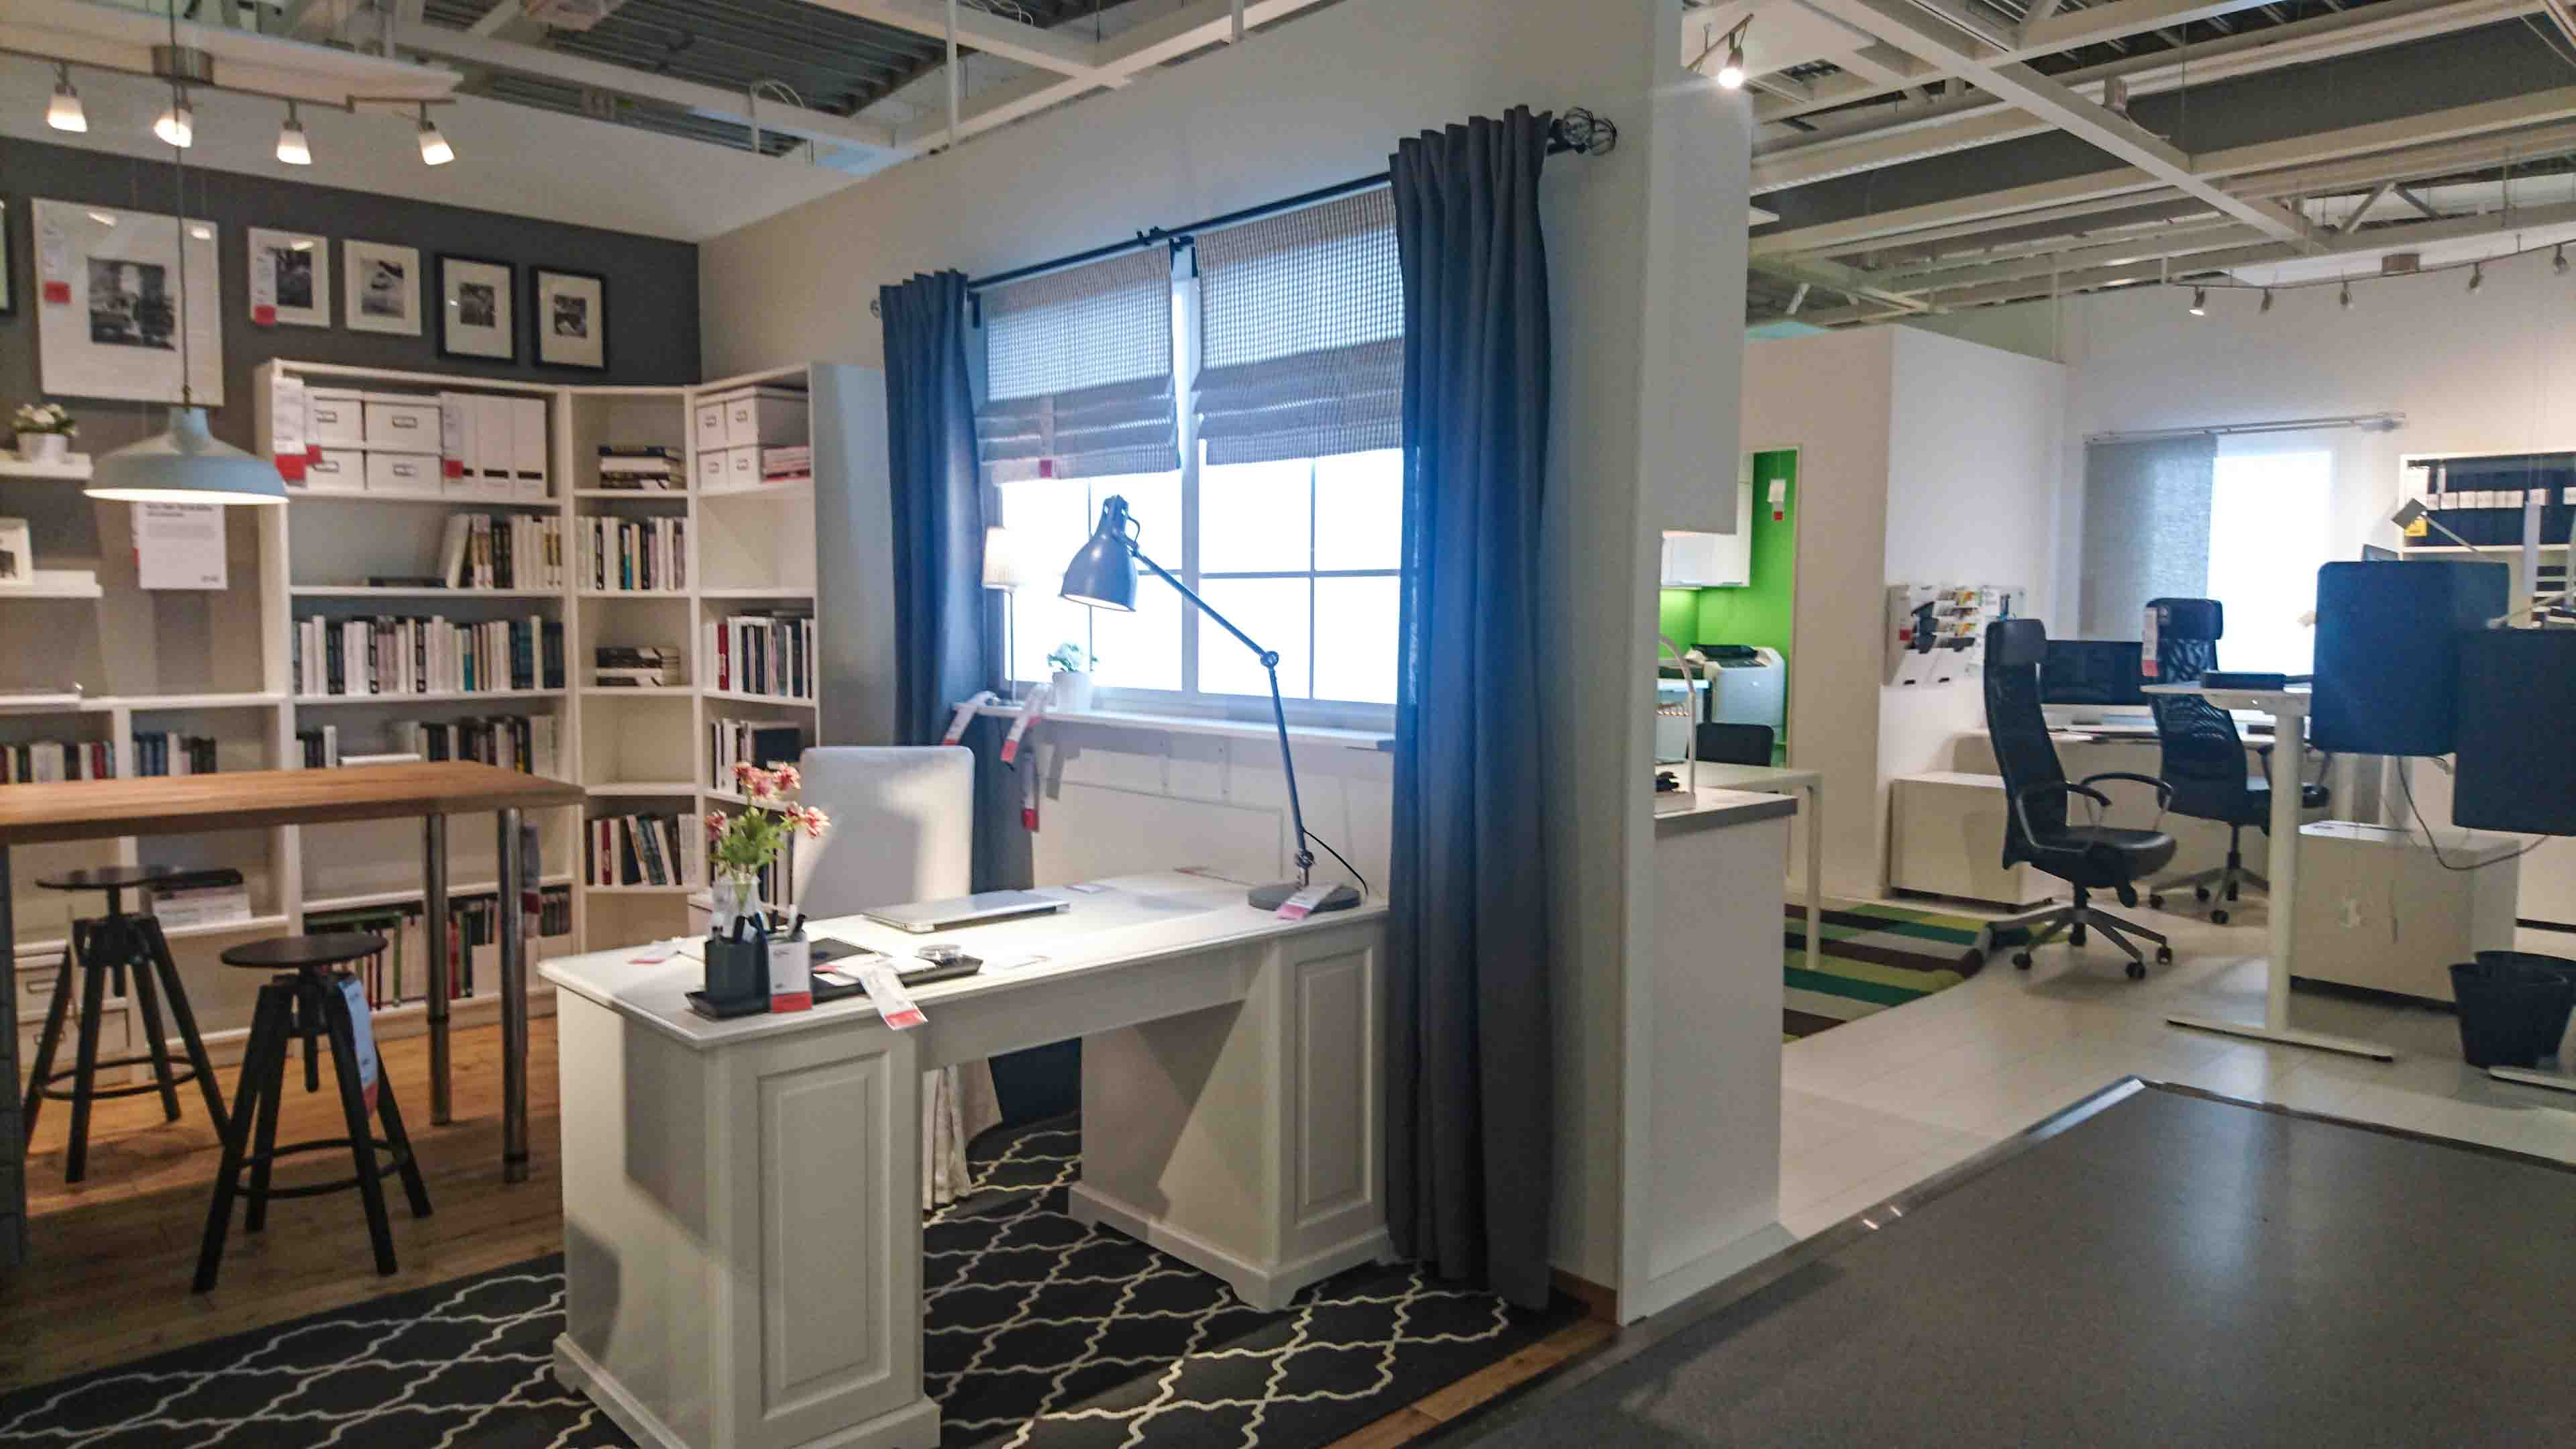 Ikea has arrived in ume study in sweden the student blog - Ikea home interior design ...